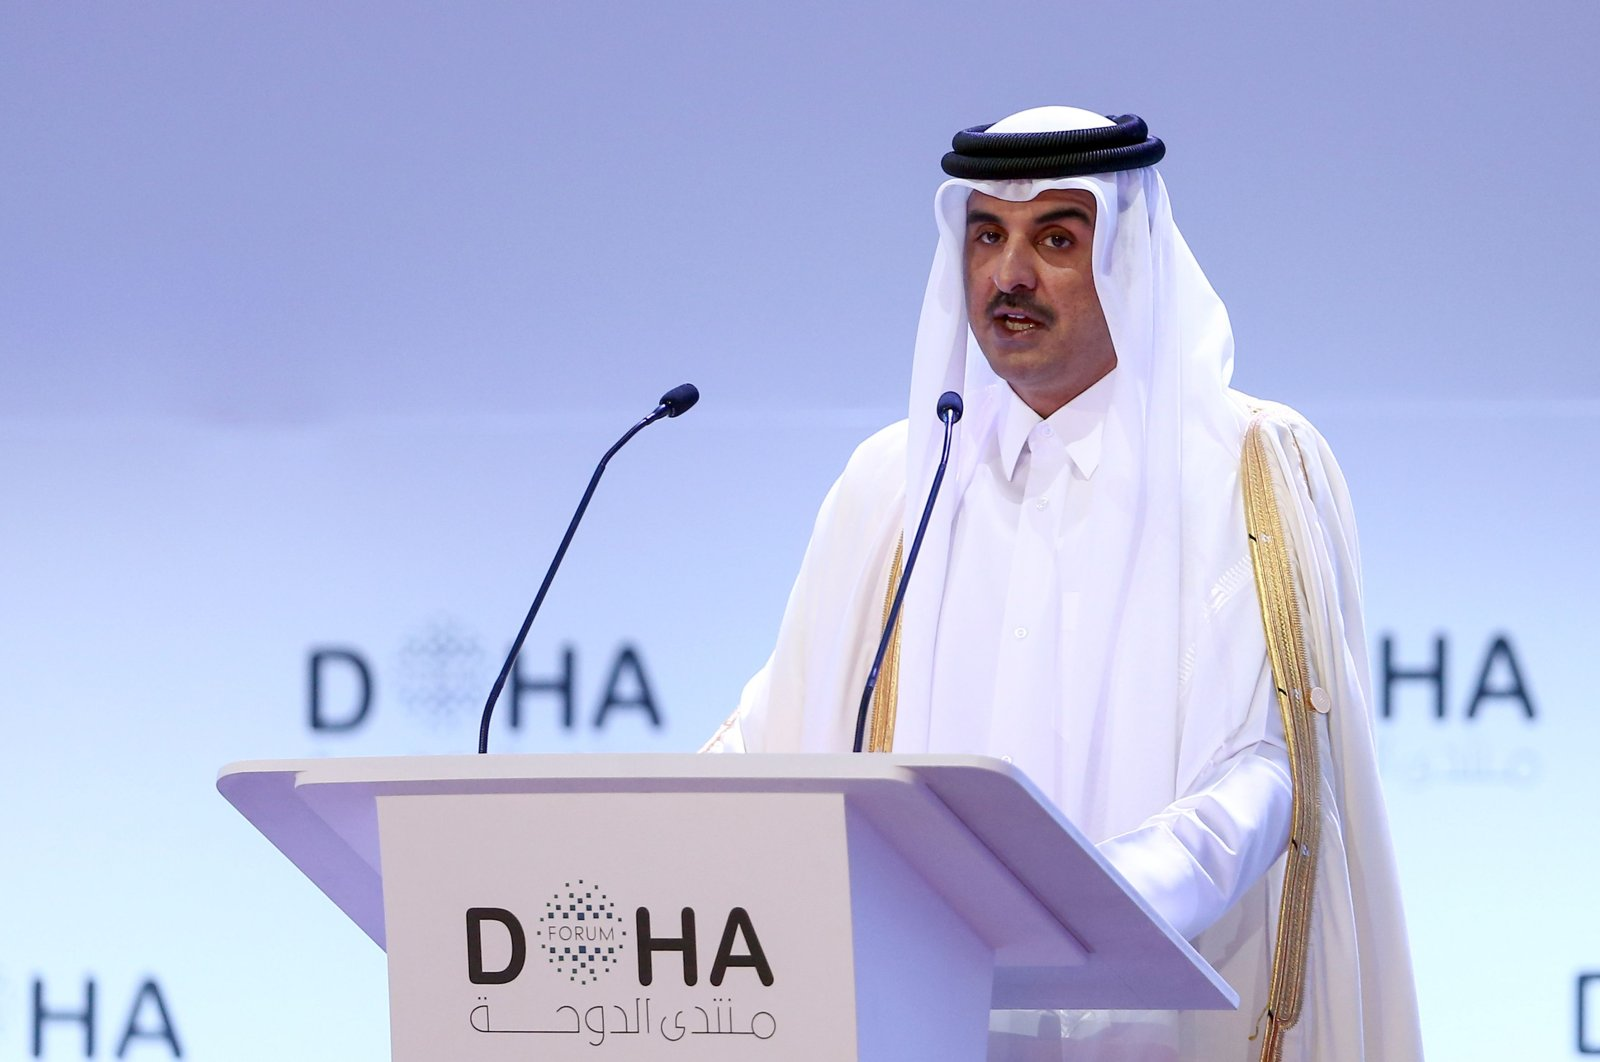 Emir of Qatar Sheikh Tamim bin Hamad al-Thani delivers a speech during the opening session of the Doha Forum in the Qatari capital, December 14, 2019 (AFP Photo)